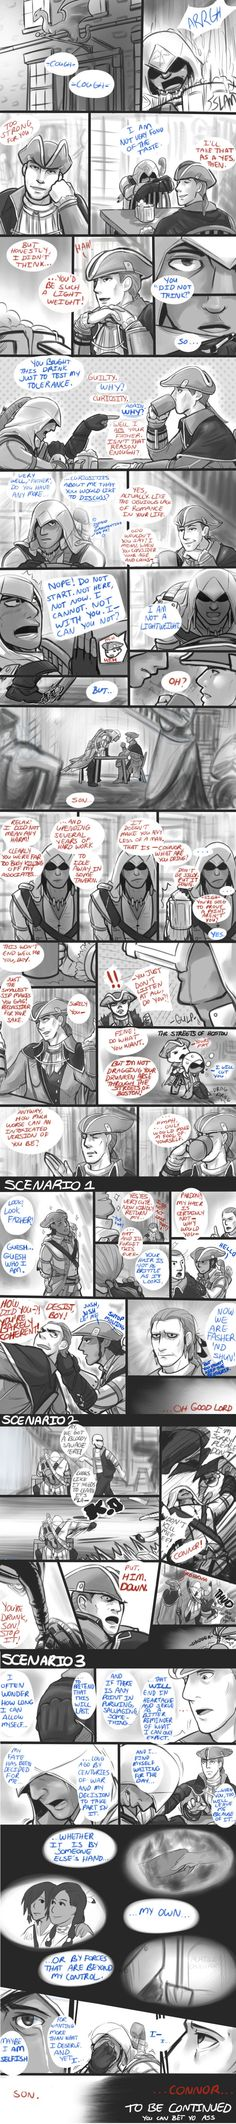 (AC3) Too Much, Too Little by blacktenshi22 on DeviantArt